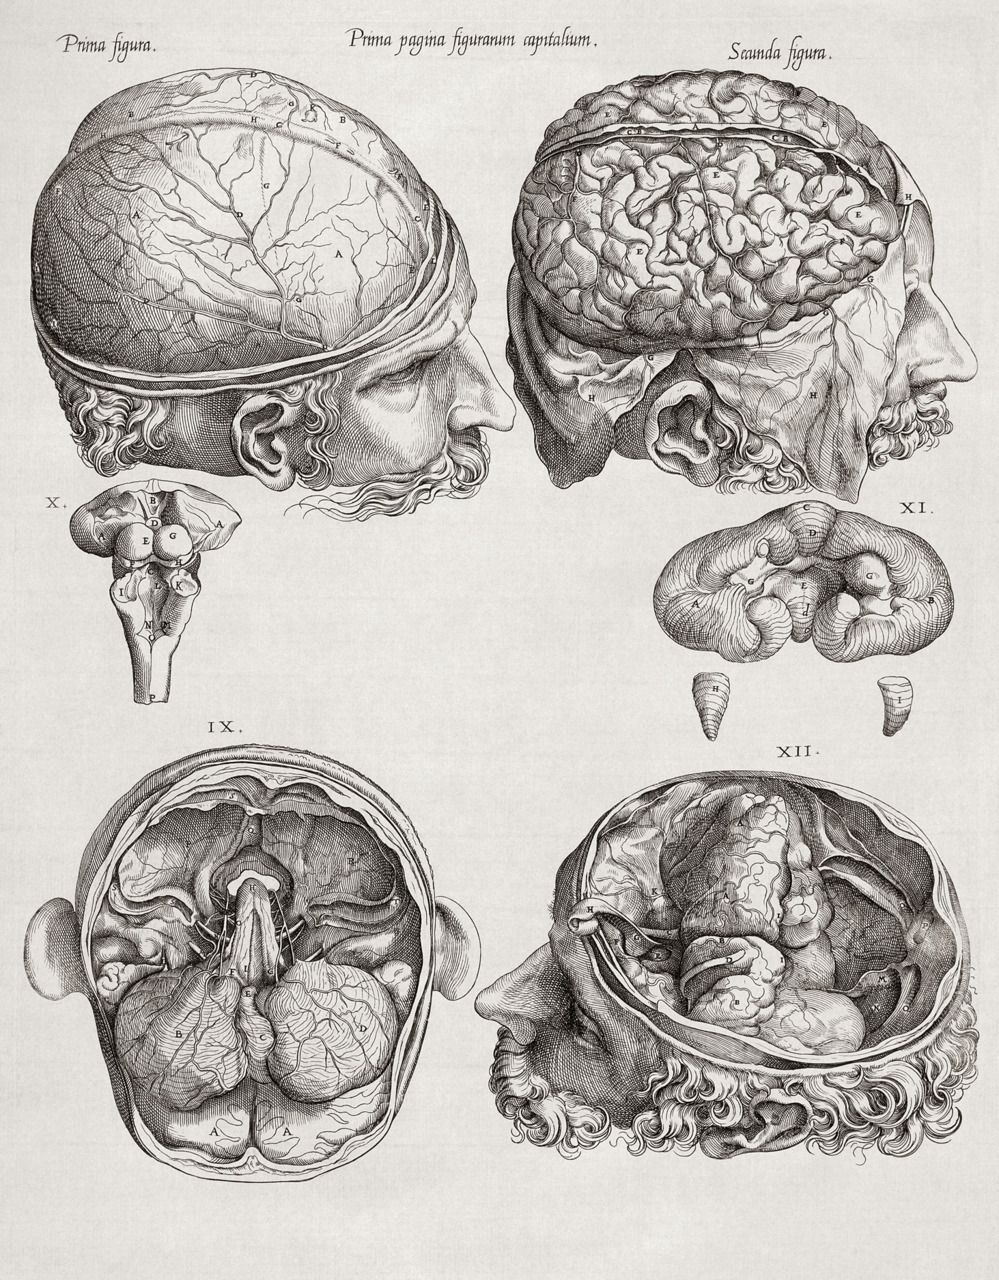 Pin by Mark Klein on Brain Cavity | Pinterest | Anatomy ...